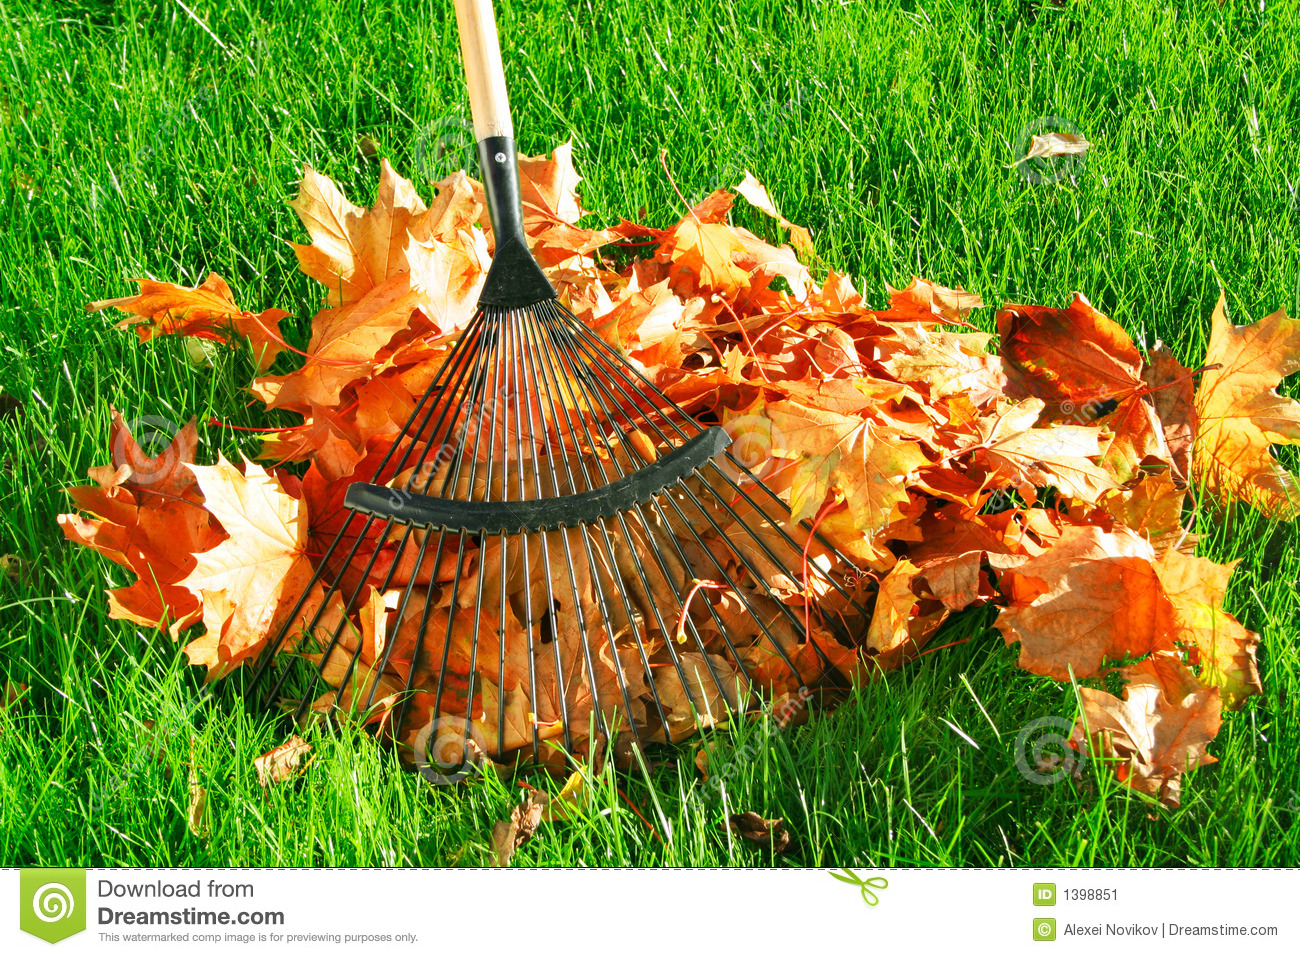 Raking The Autumn Leaves Stock Image - Image: 1398851